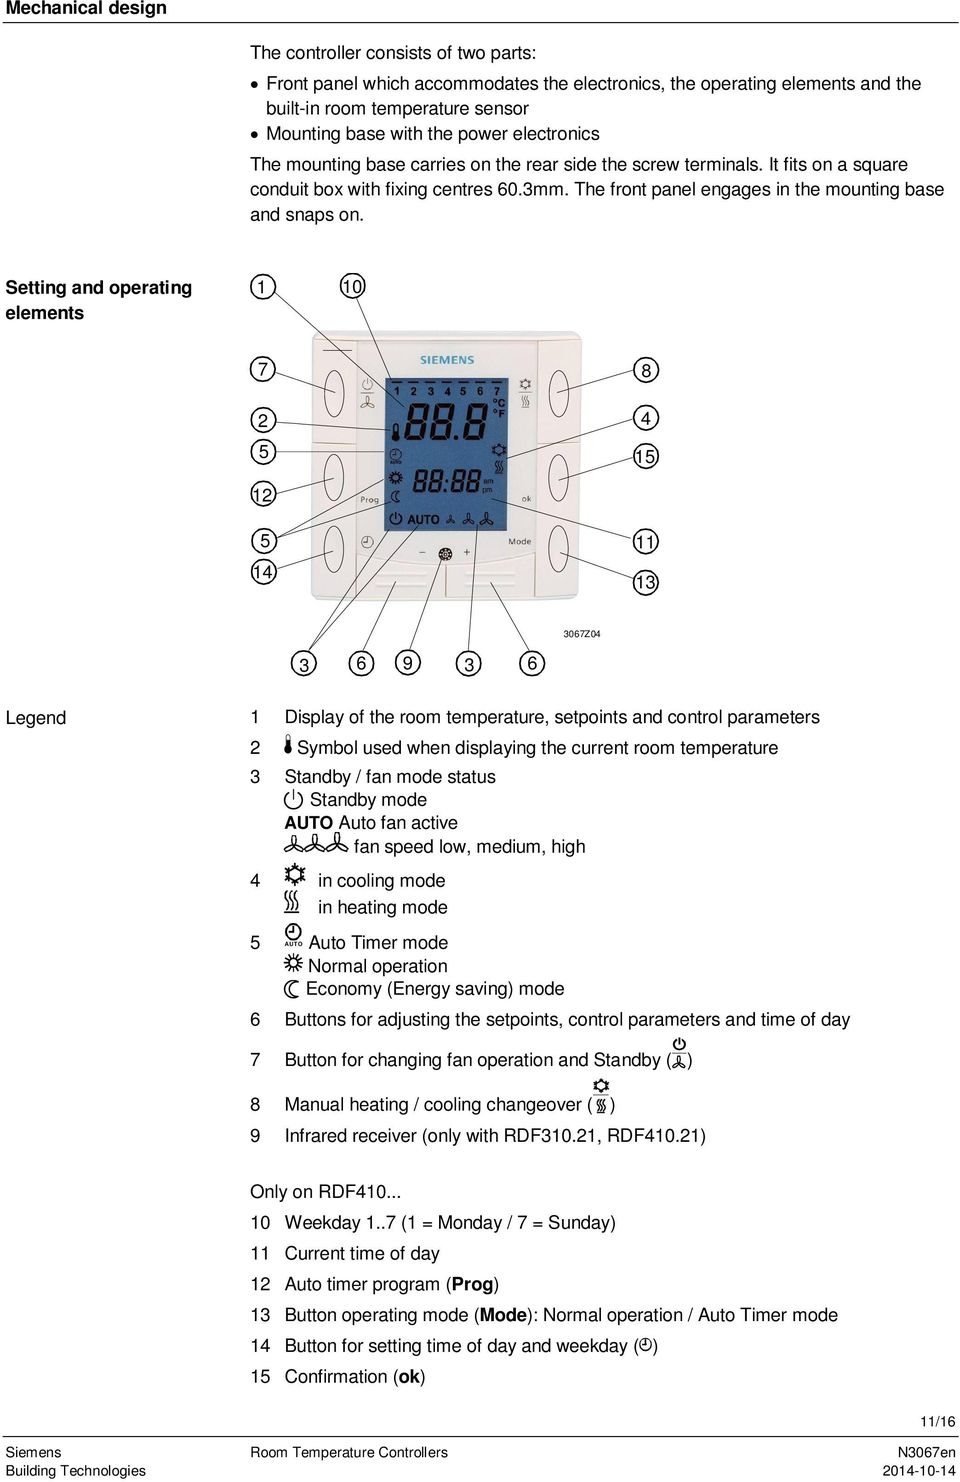 Setting and operating elements 1 10 7 8 2 4 5 15 12 5 14 11 13 3067Z04 3 6 9 3 6 Legend 1 Display of the room temperature, setpoints and control parameters 2 Symbol used when displaying the current